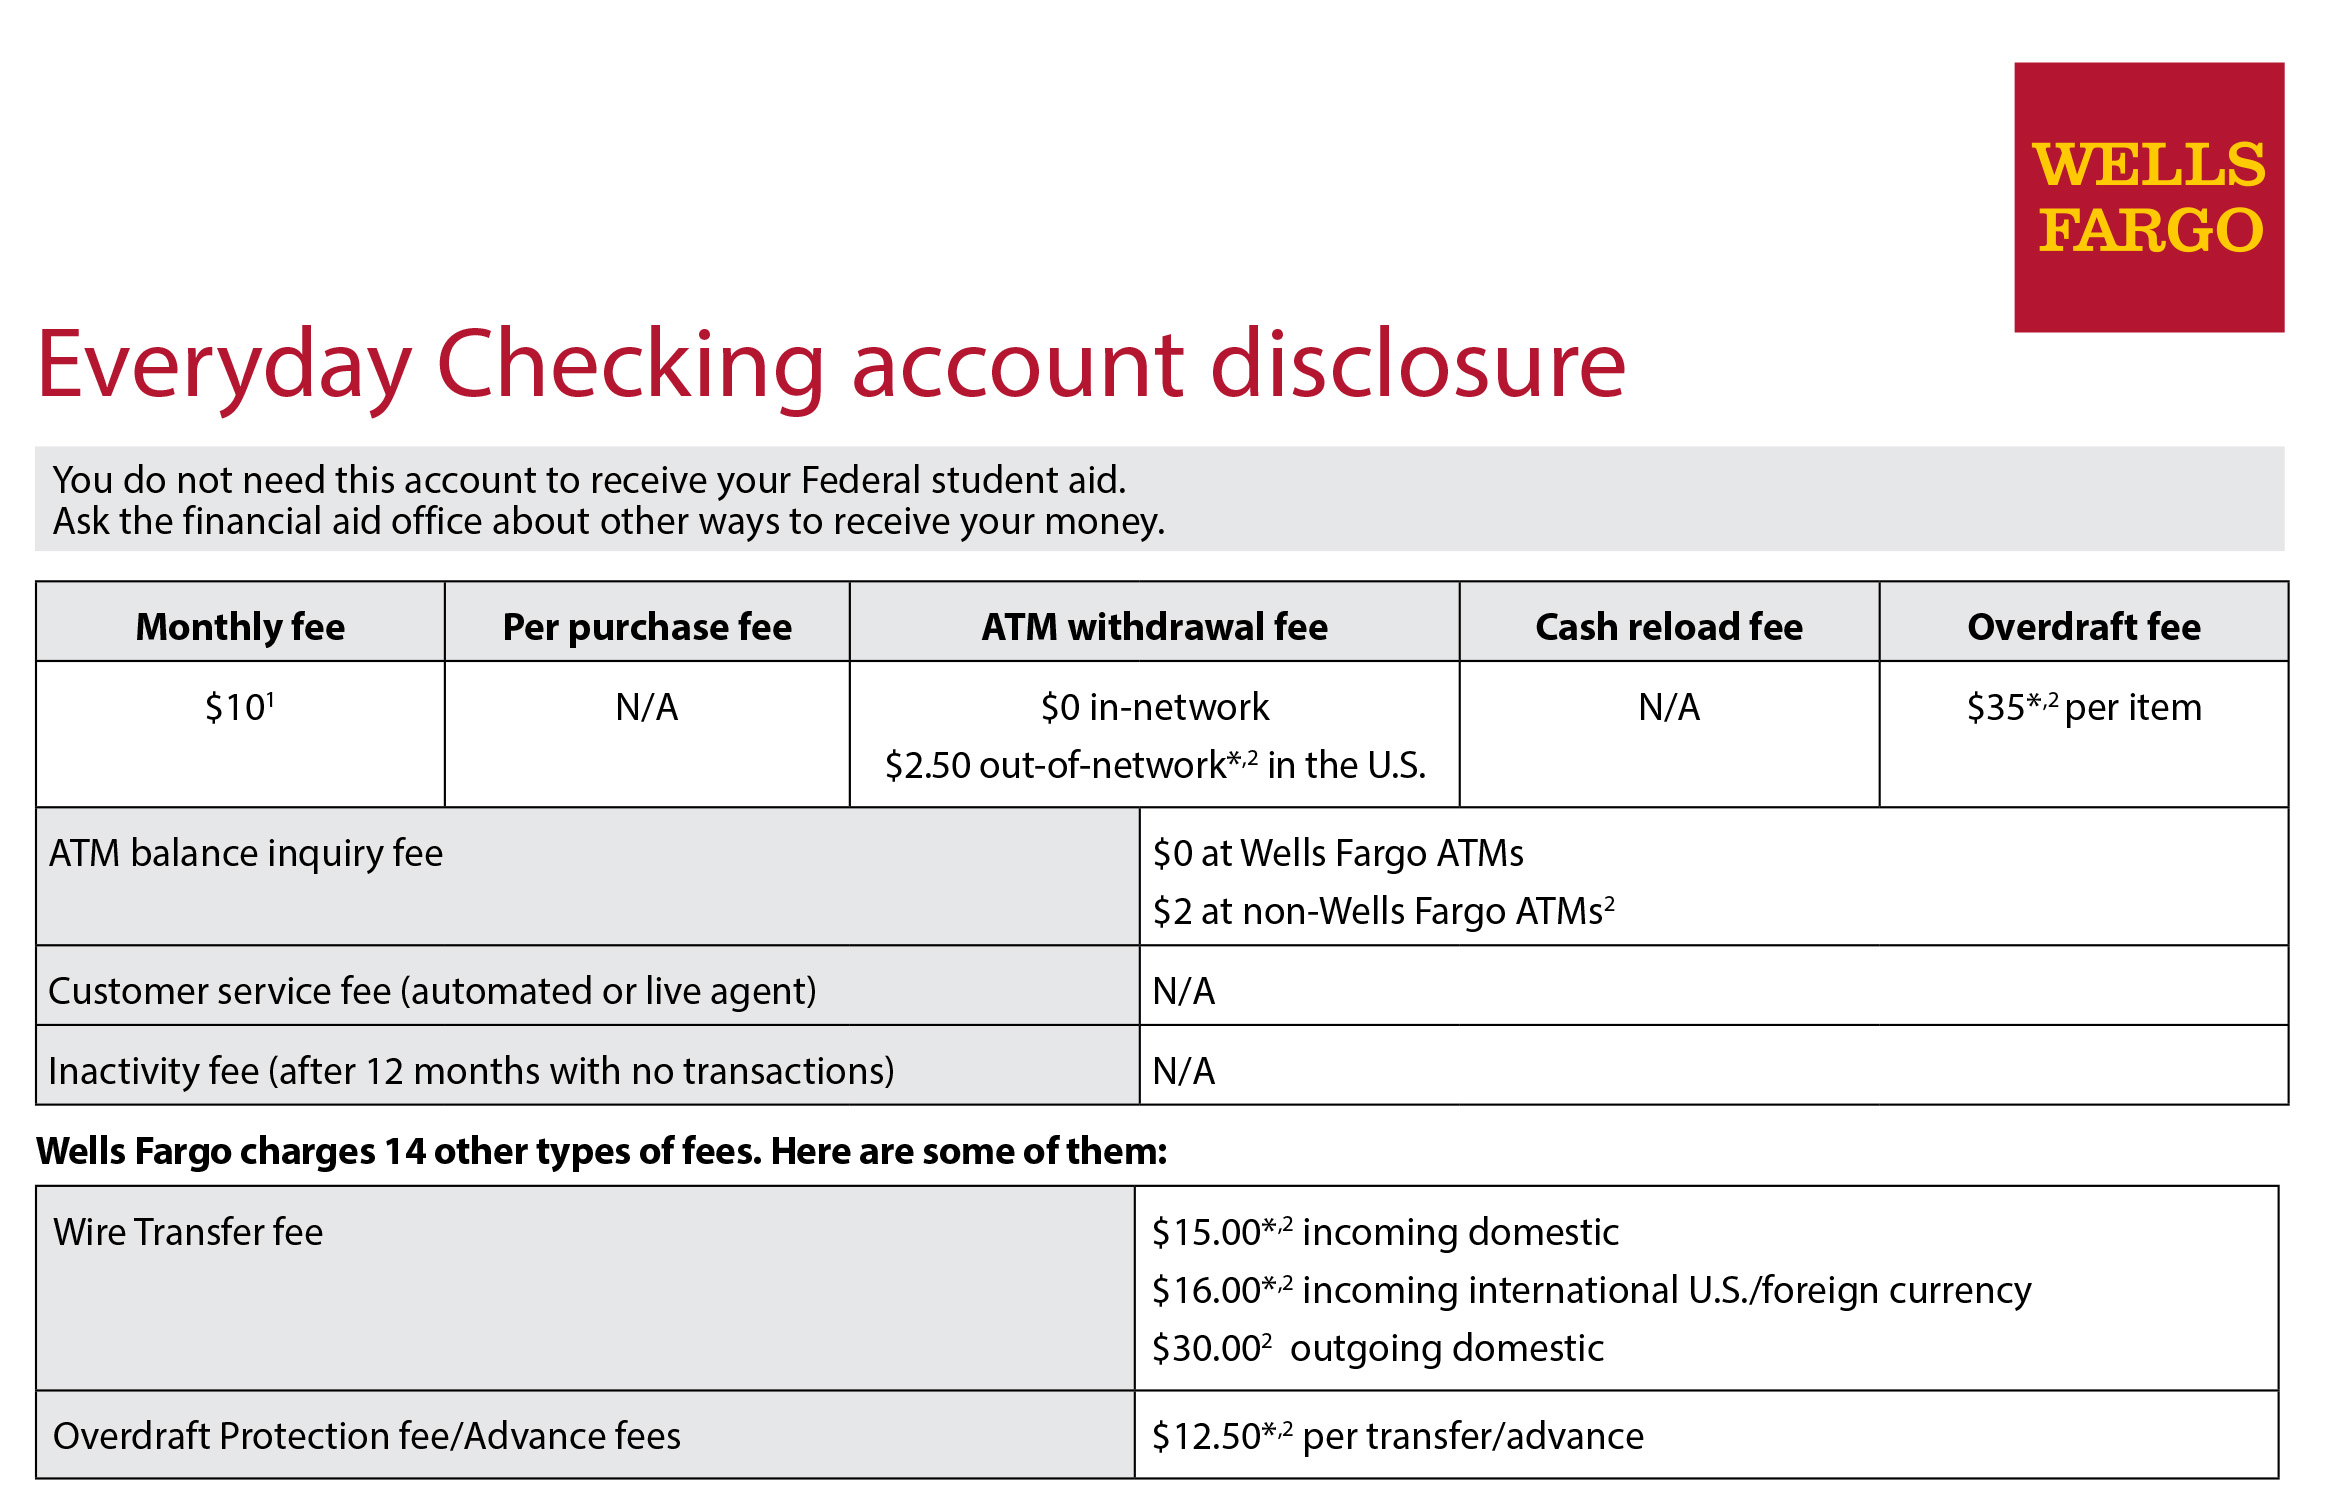 image showing details of Wells Fargo Everyday Checking account disclosure